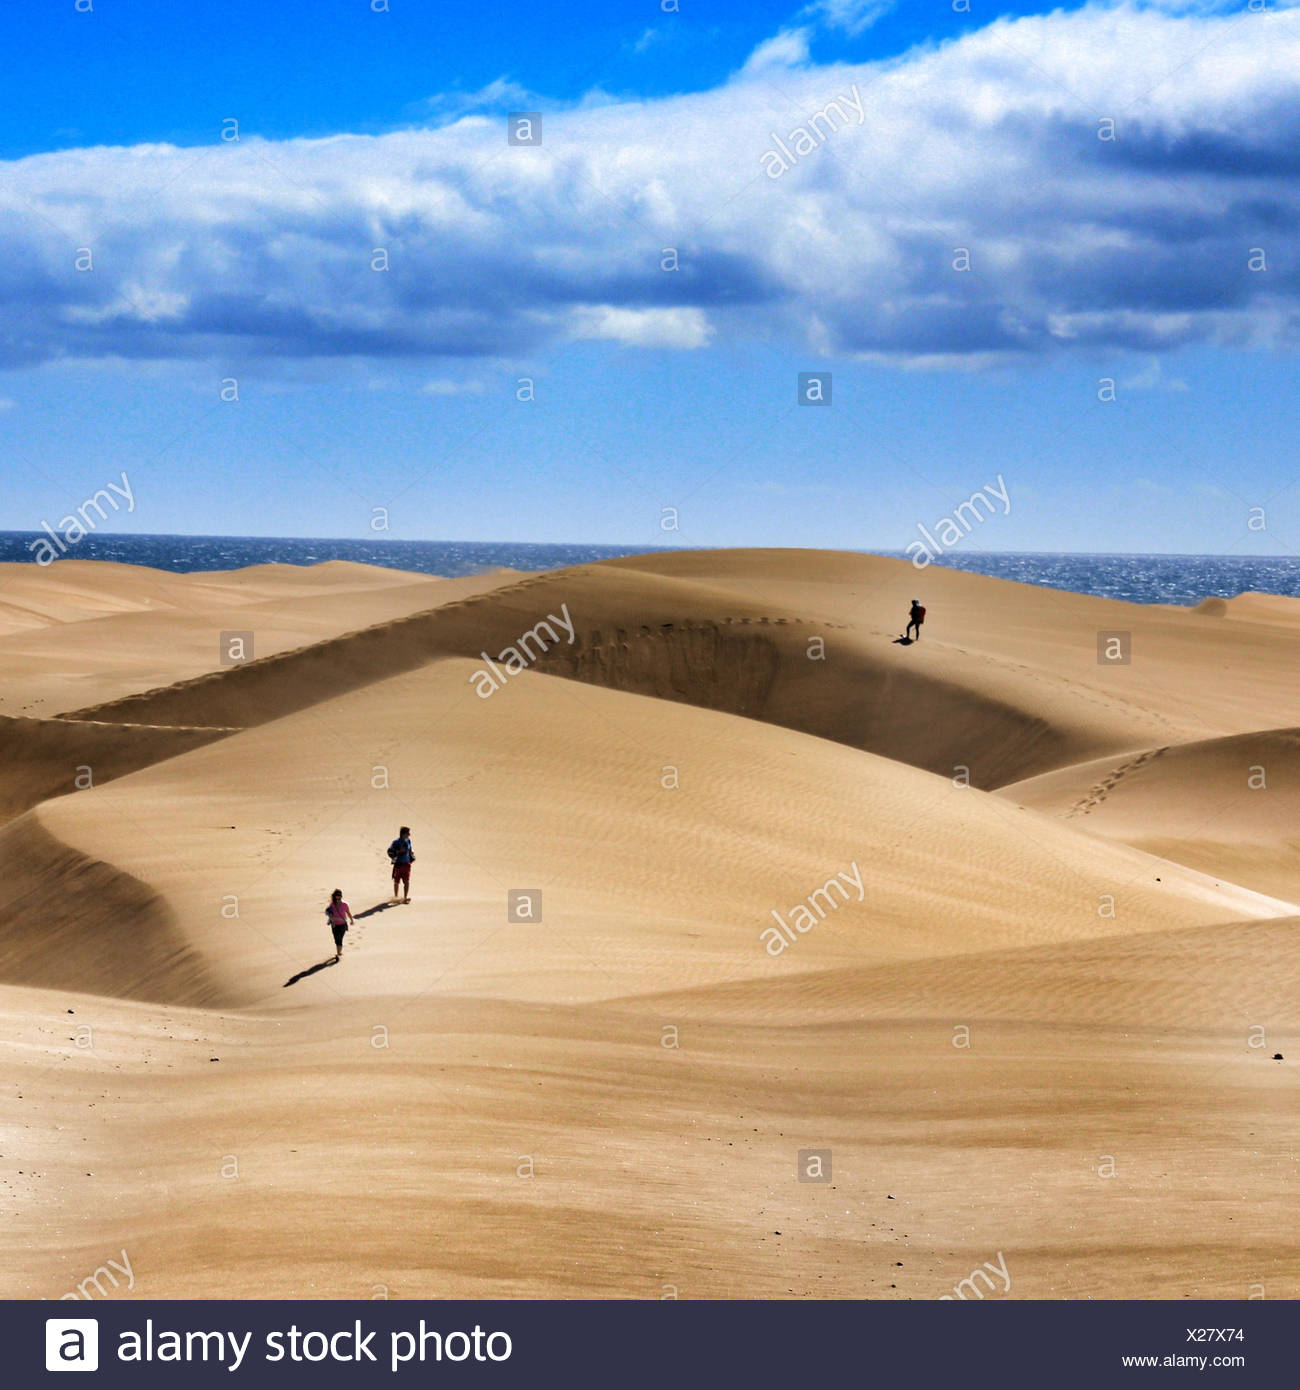 People on sand dune next to ocean - Stock Image